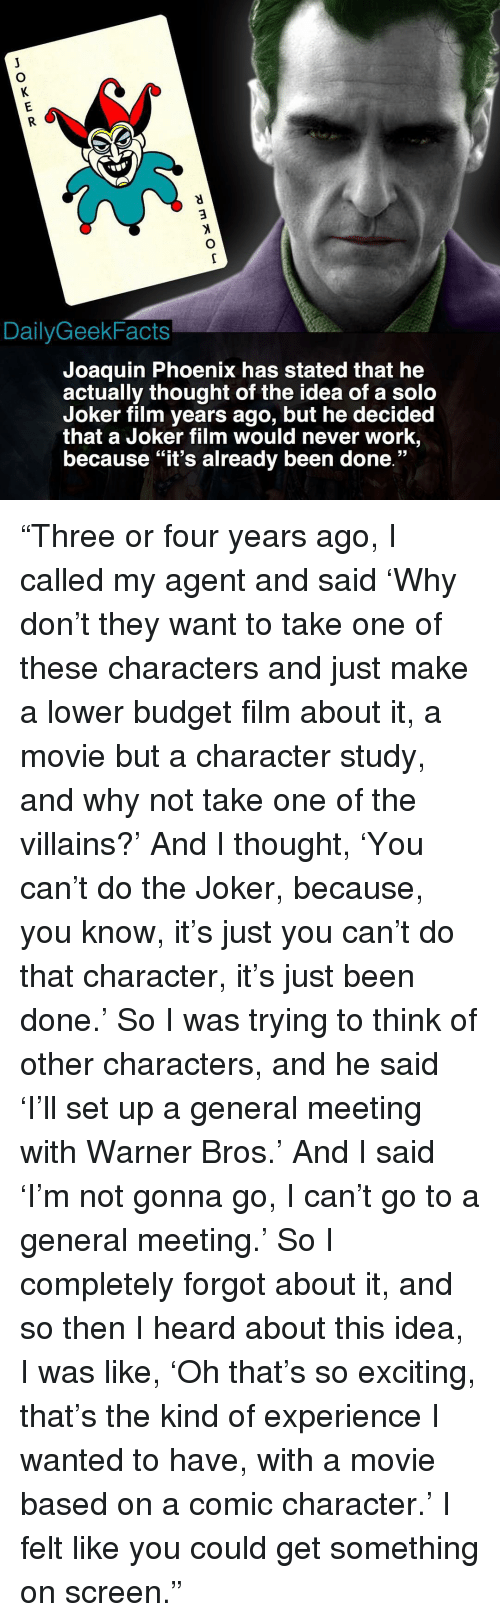 "Joker, Memes, and Warner Bros.: DailyGeekFacts  Joaquin Phoenix has stated that he  actually thought of the idea of a solo  Joker film years ago, but he decided  that a Joker film would never work,  because ""it's already been done."" ""Three or four years ago, I called my agent and said 'Why don't they want to take one of these characters and just make a lower budget film about it, a movie but a character study, and why not take one of the villains?' And I thought, 'You can't do the Joker, because, you know, it's just you can't do that character, it's just been done.' So I was trying to think of other characters, and he said 'I'll set up a general meeting with Warner Bros.' And I said 'I'm not gonna go, I can't go to a general meeting.' So I completely forgot about it, and so then I heard about this idea, I was like, 'Oh that's so exciting, that's the kind of experience I wanted to have, with a movie based on a comic character.' I felt like you could get something on screen."""